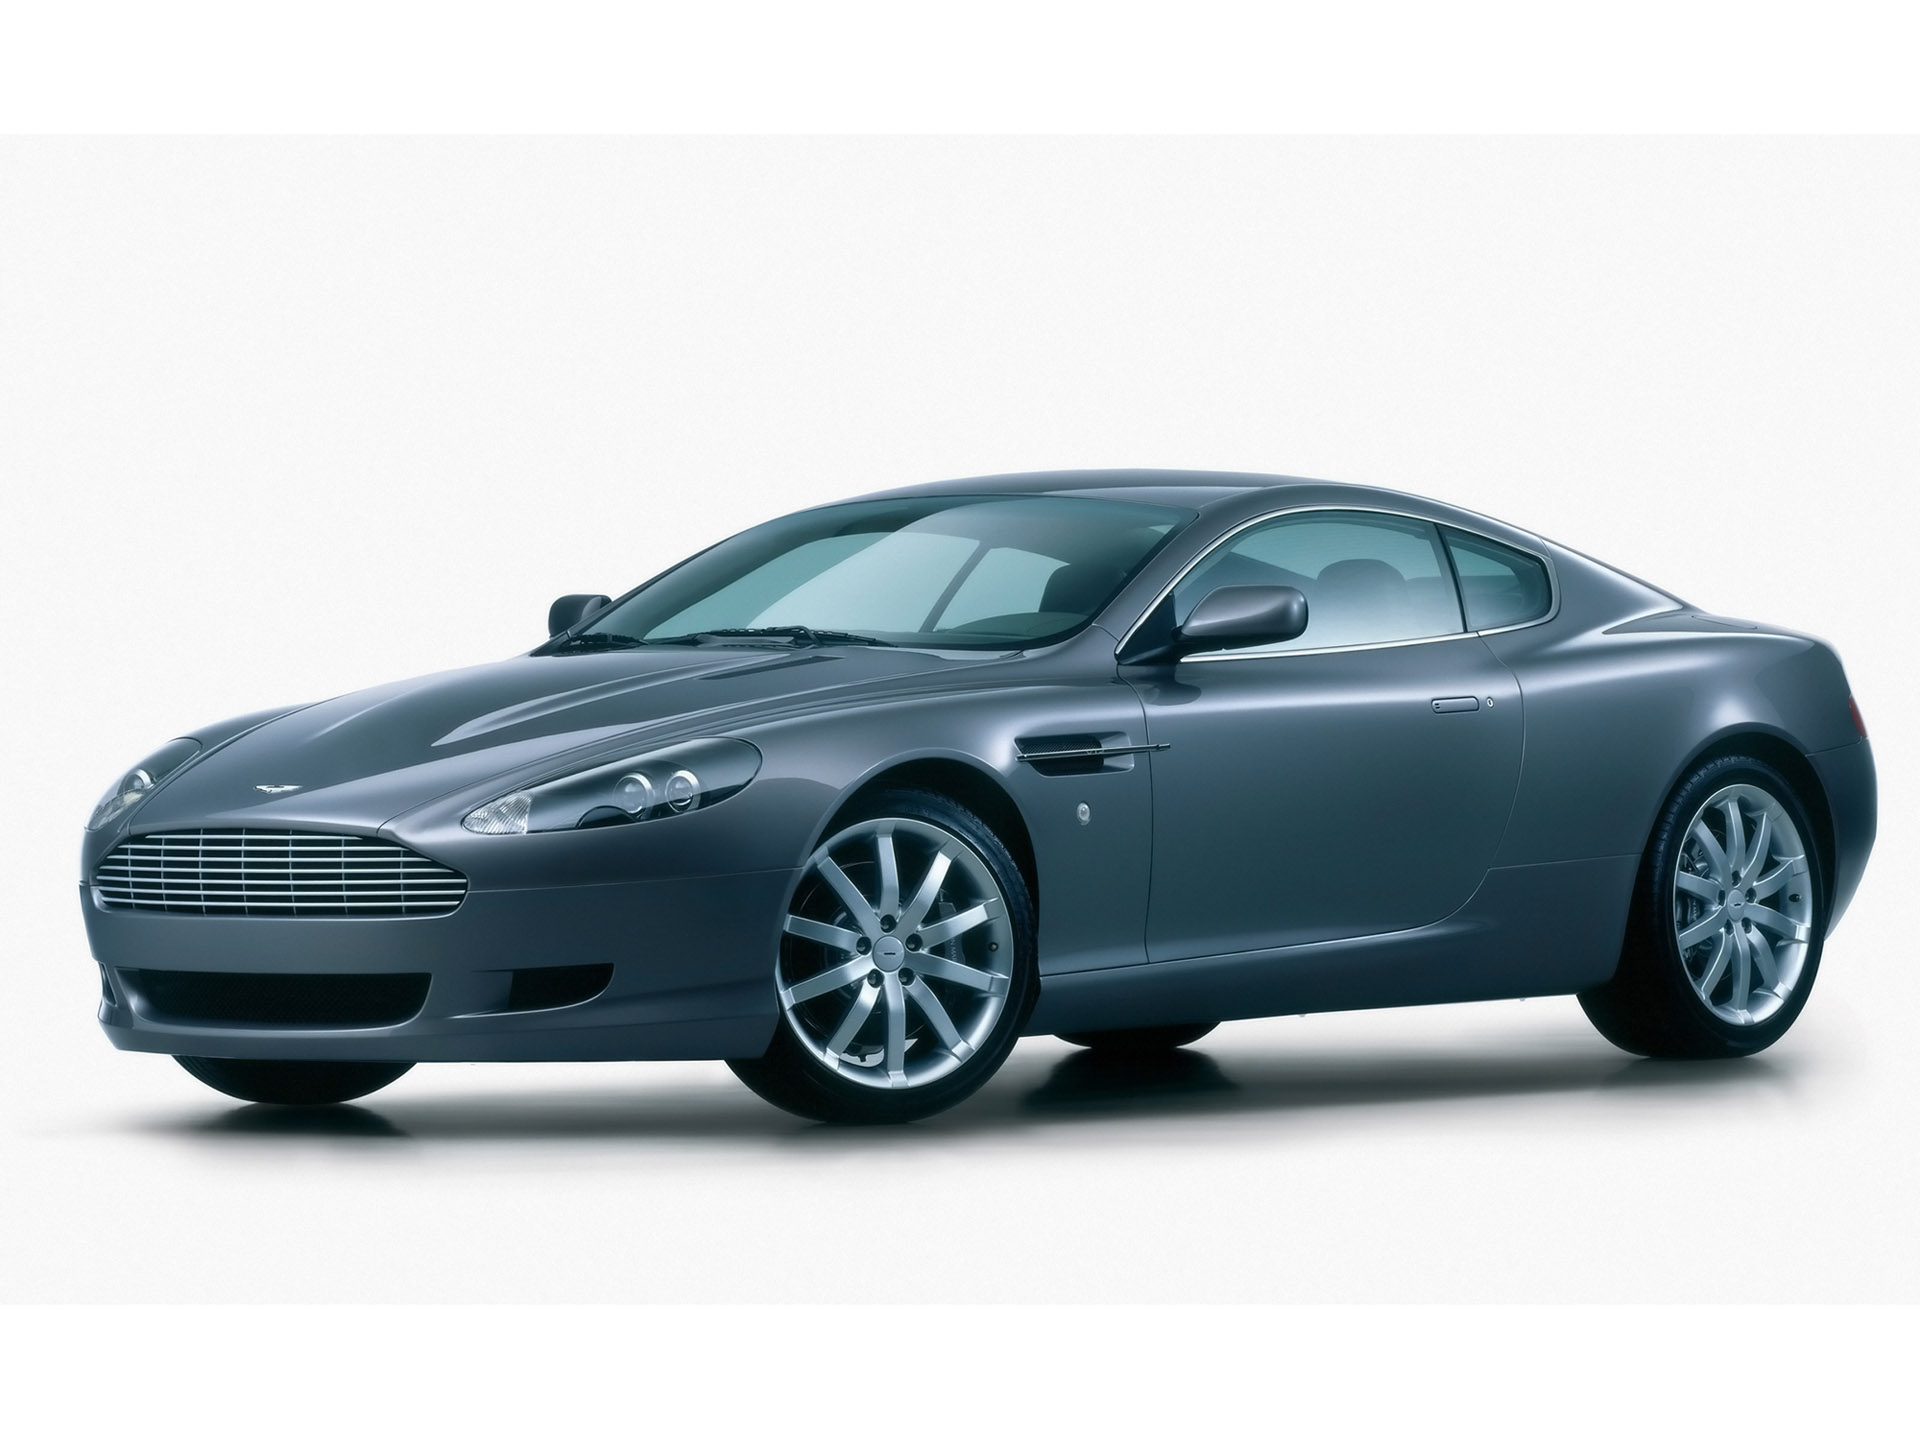 db9 – Automobile Wallpapers, in HD | Iphone | Android| Desktop 13 Wallpaper